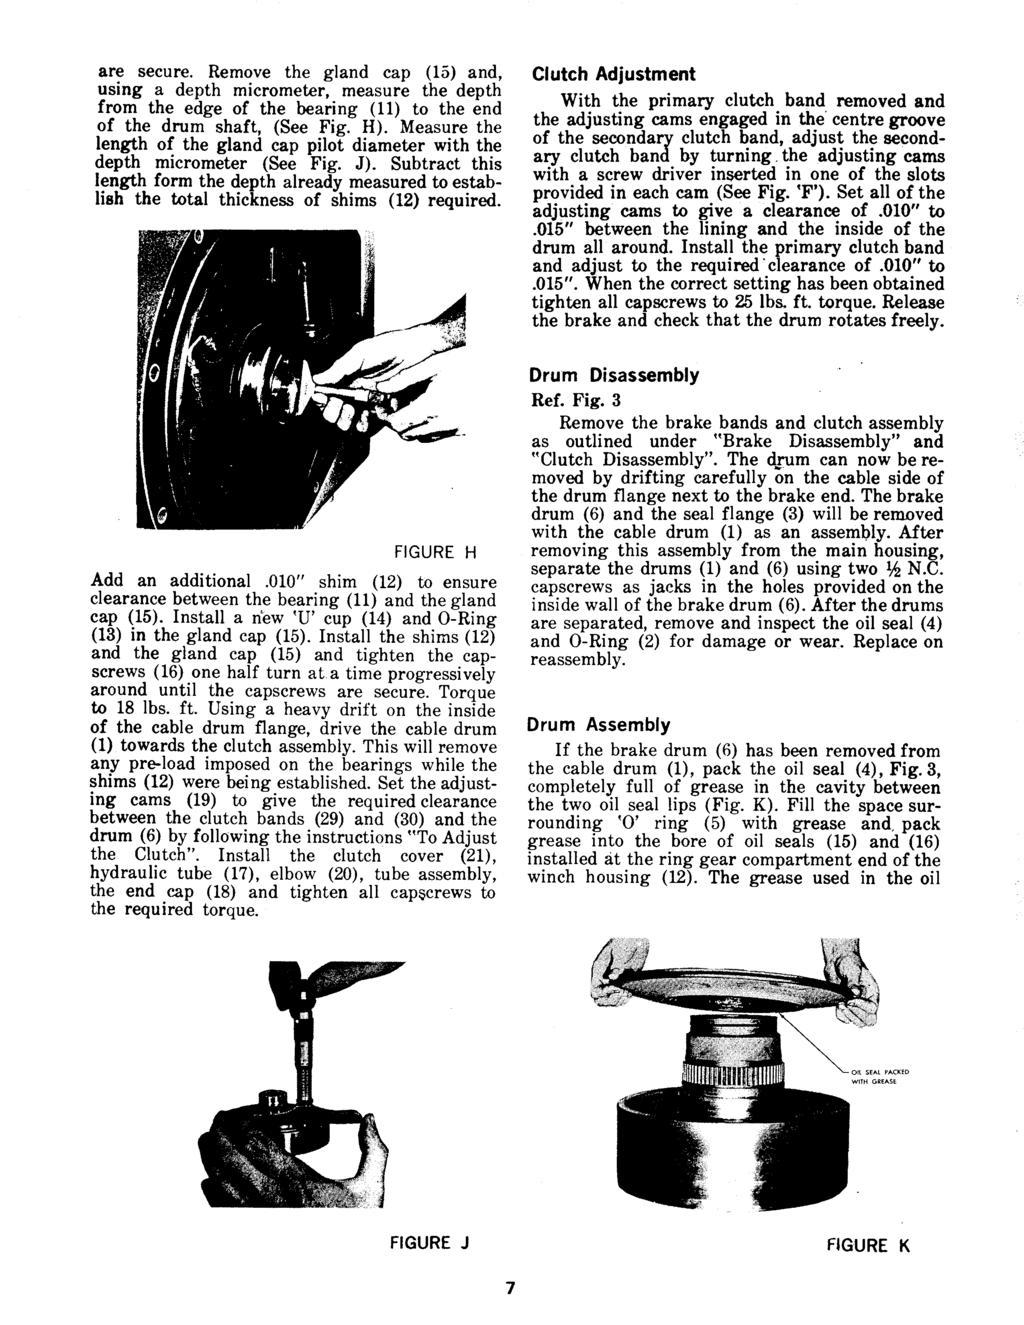 are secure. Remove the gland cap (15) and, using a depth micrometer, measure the depth from the edge of the bearing (11) to the end of the drum shaft, (See Fig. H).